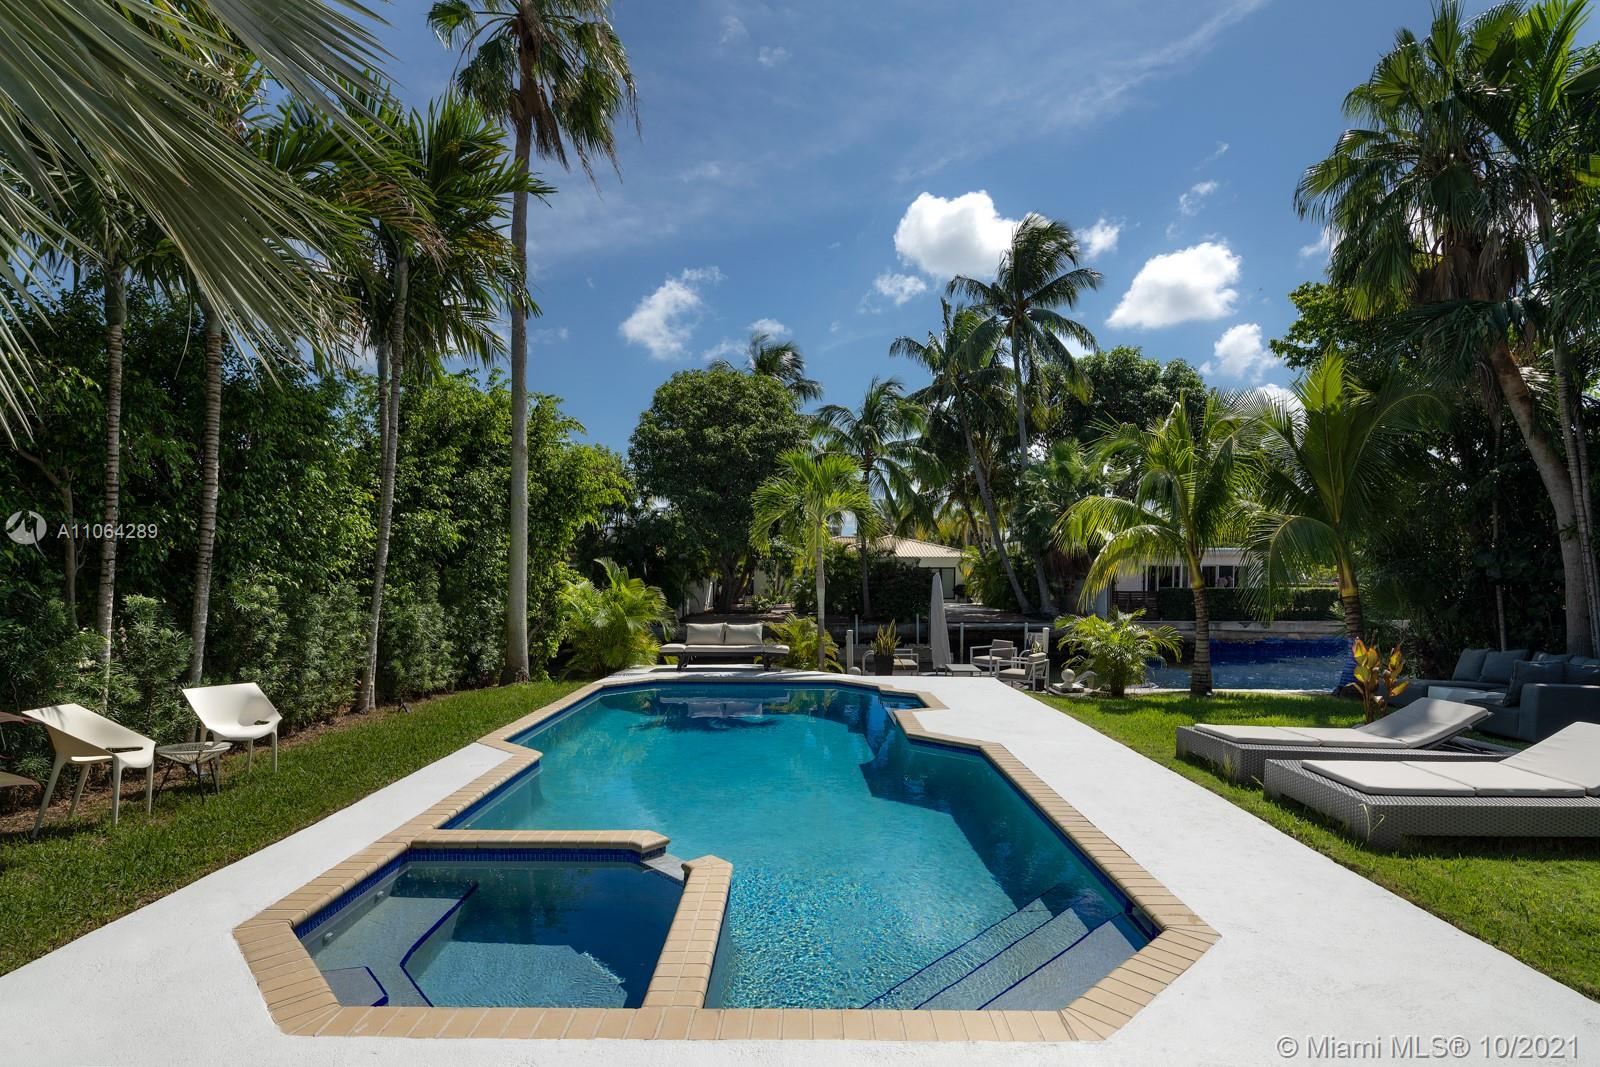 Your mid-century modern tropical oasis awaits you. Must-see 3 bd/2.5 ba waterfront sanctuary located in exclusive gated community of Biscayne Point, Miami Beach. The current residence feats. 2,700 living sf on an impressive 9,000 sf lot, 60 ft of waterfrontage, a 30 ft salt pool/jacuzzi/bbq area, 15 ft dock with 2 Yamaha WaveRunners & ports. The distinguished architecture boasts Miami Beach elegance, as the foreseen renovation plans designed by famed architect Kobi Karp, will enhance the property's historic attributes and increase the sq footage to 5,000. Newly renovated custom bath w electric toilet and the kitchen is currently under a $100k renovation with top-of-the-line Wolf & Sub-Zero appliances.